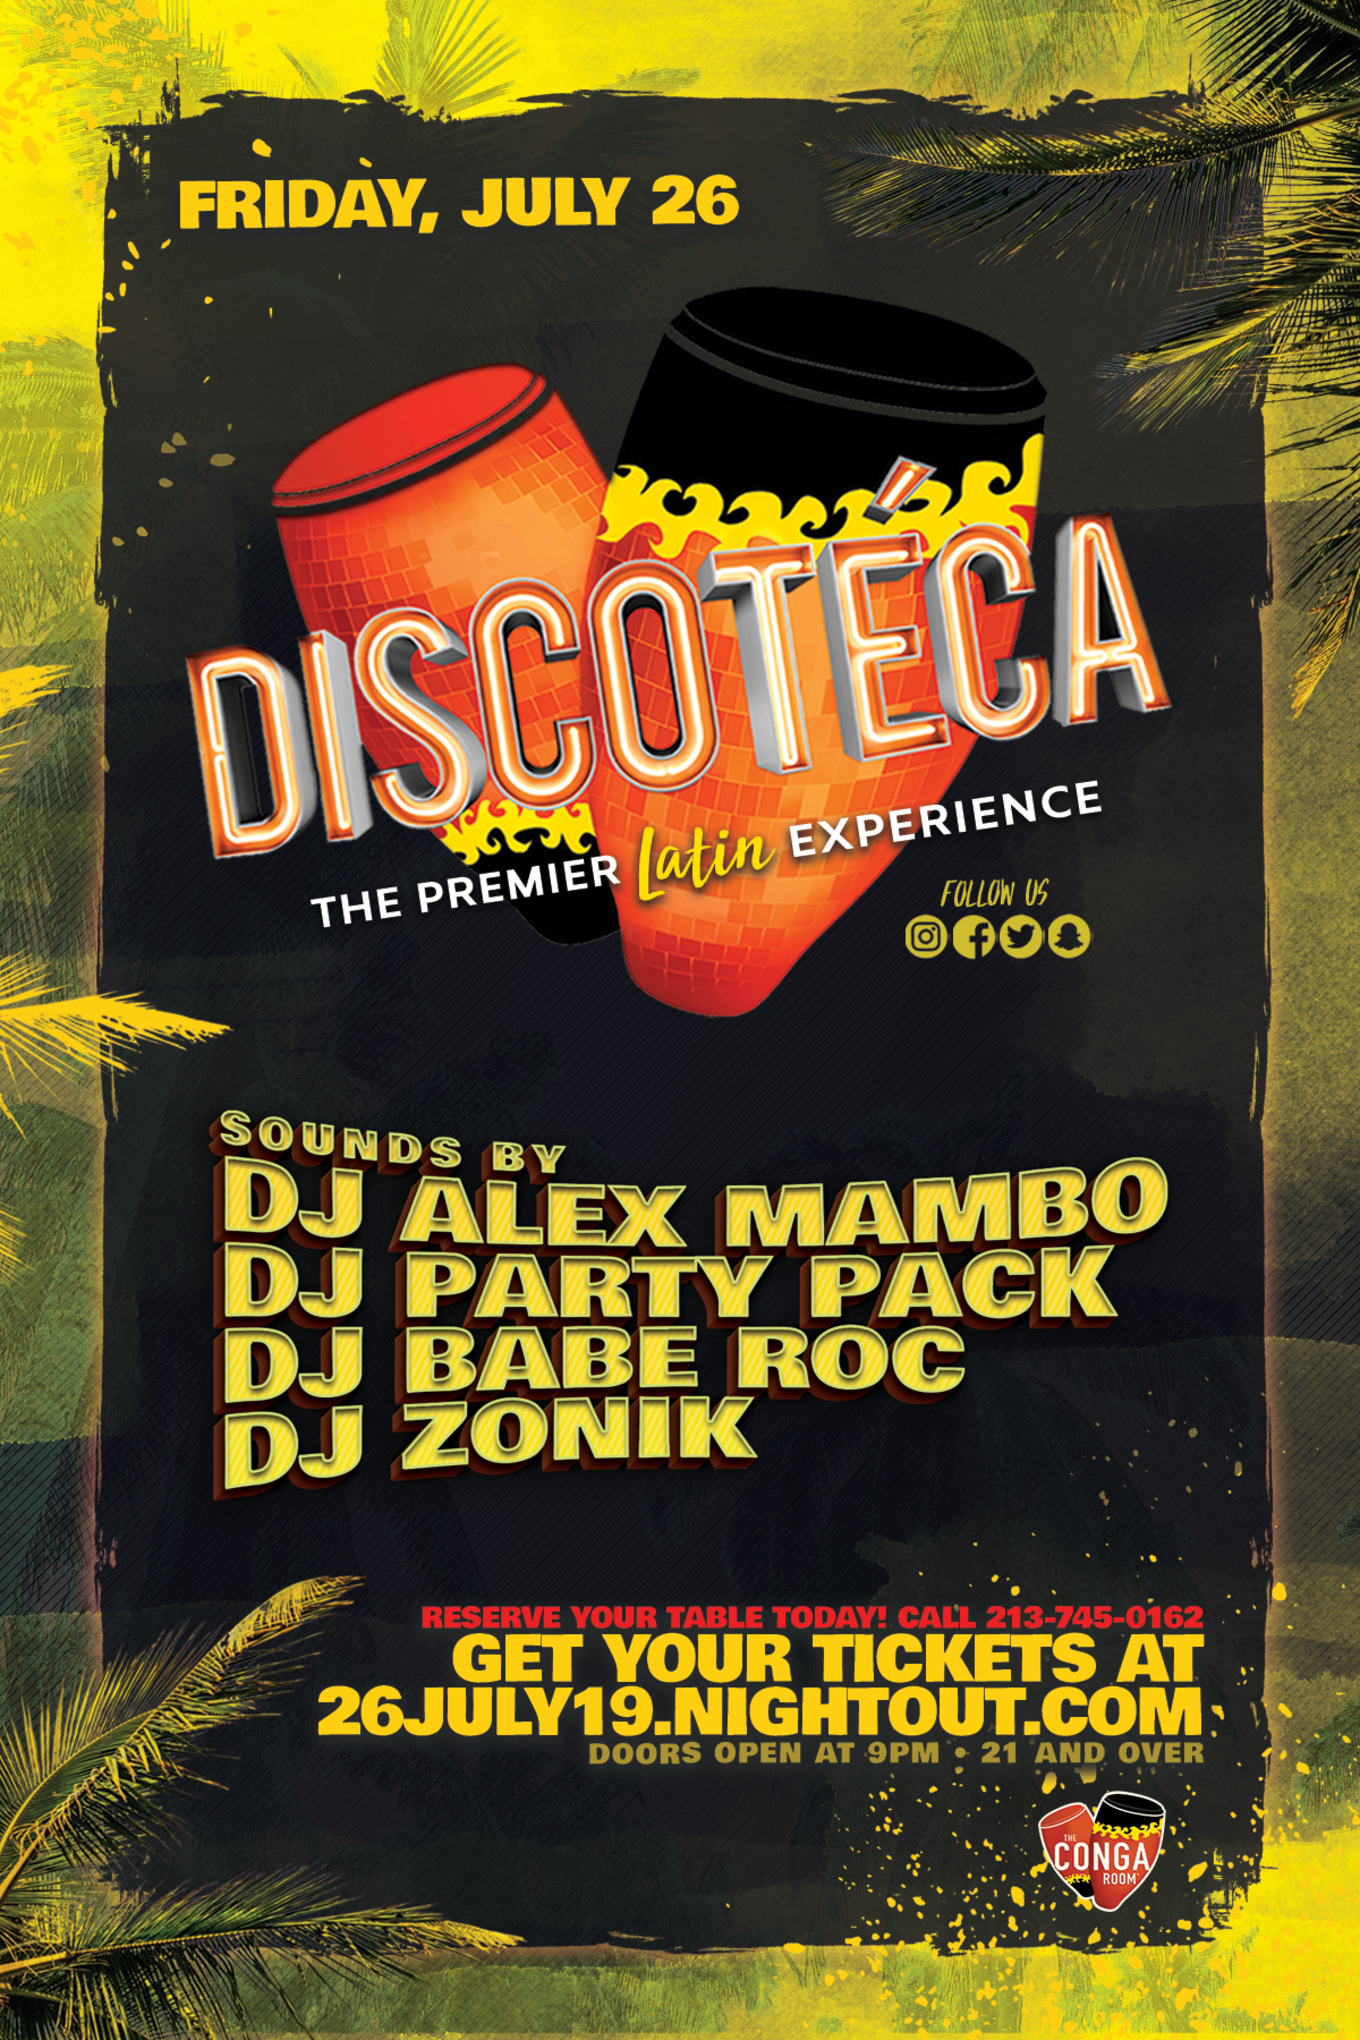 Conga Room presents Discoteca - Tickets - Conga Room , Los